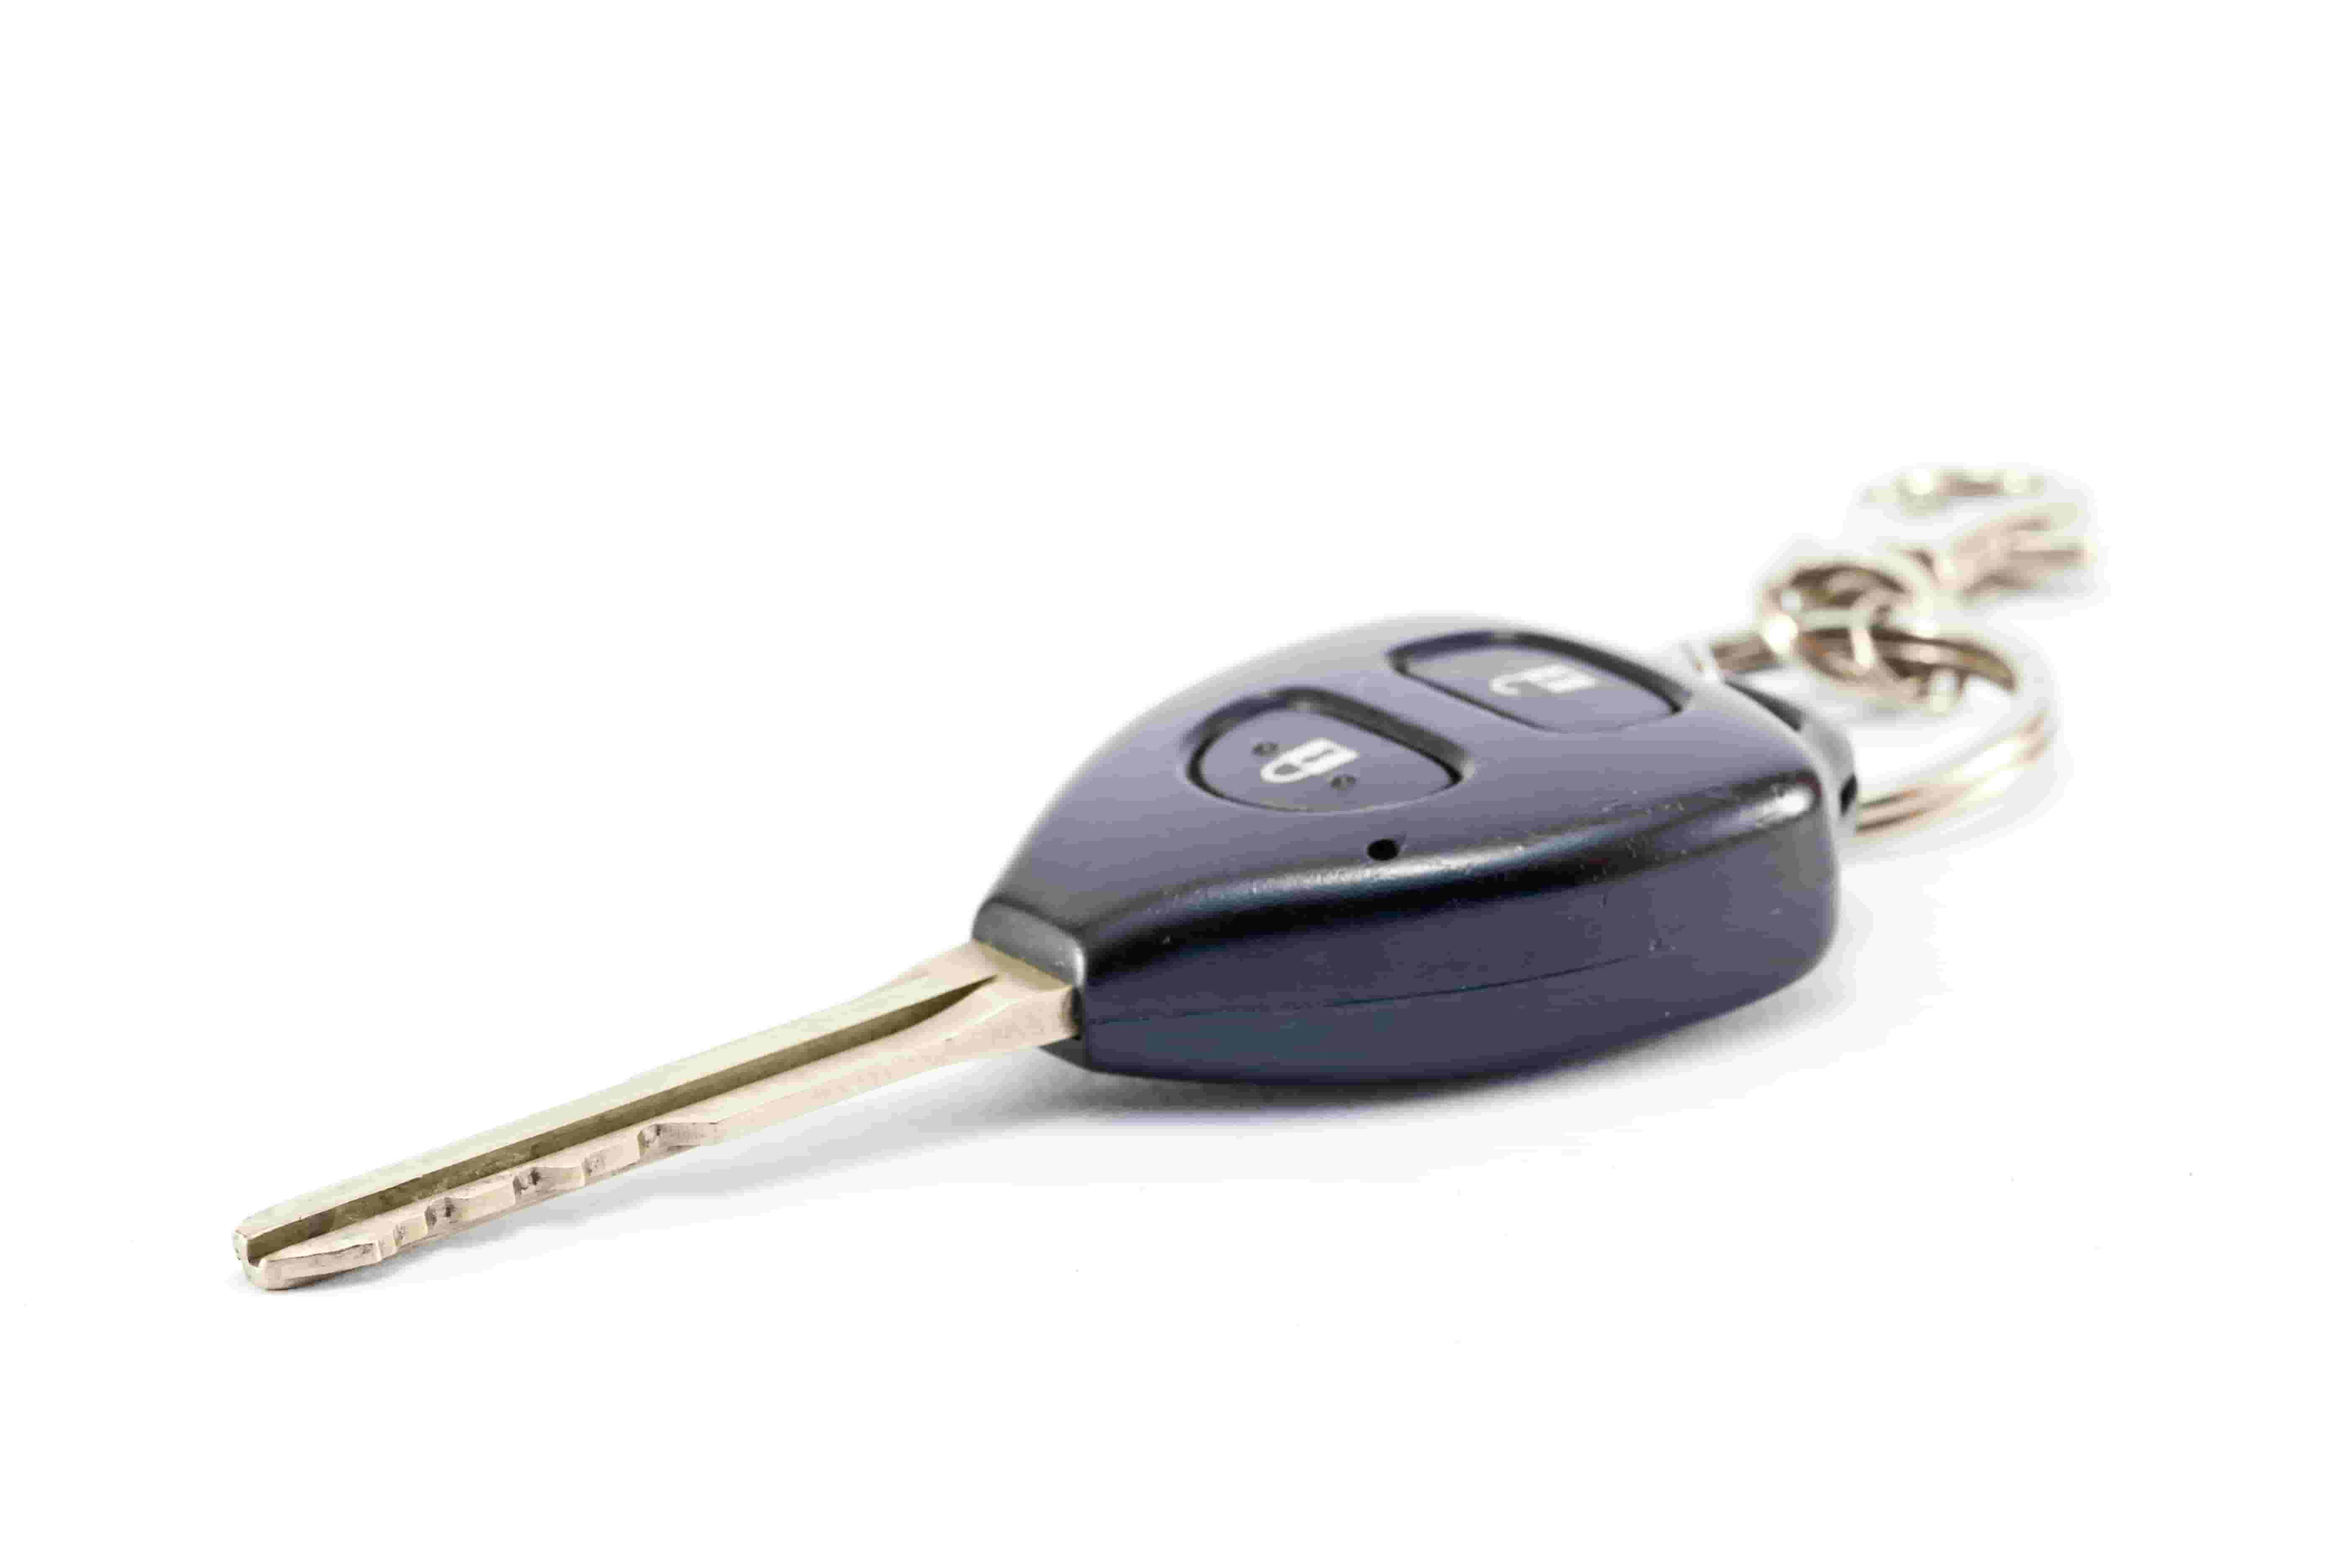 remote control car key on isolated white background